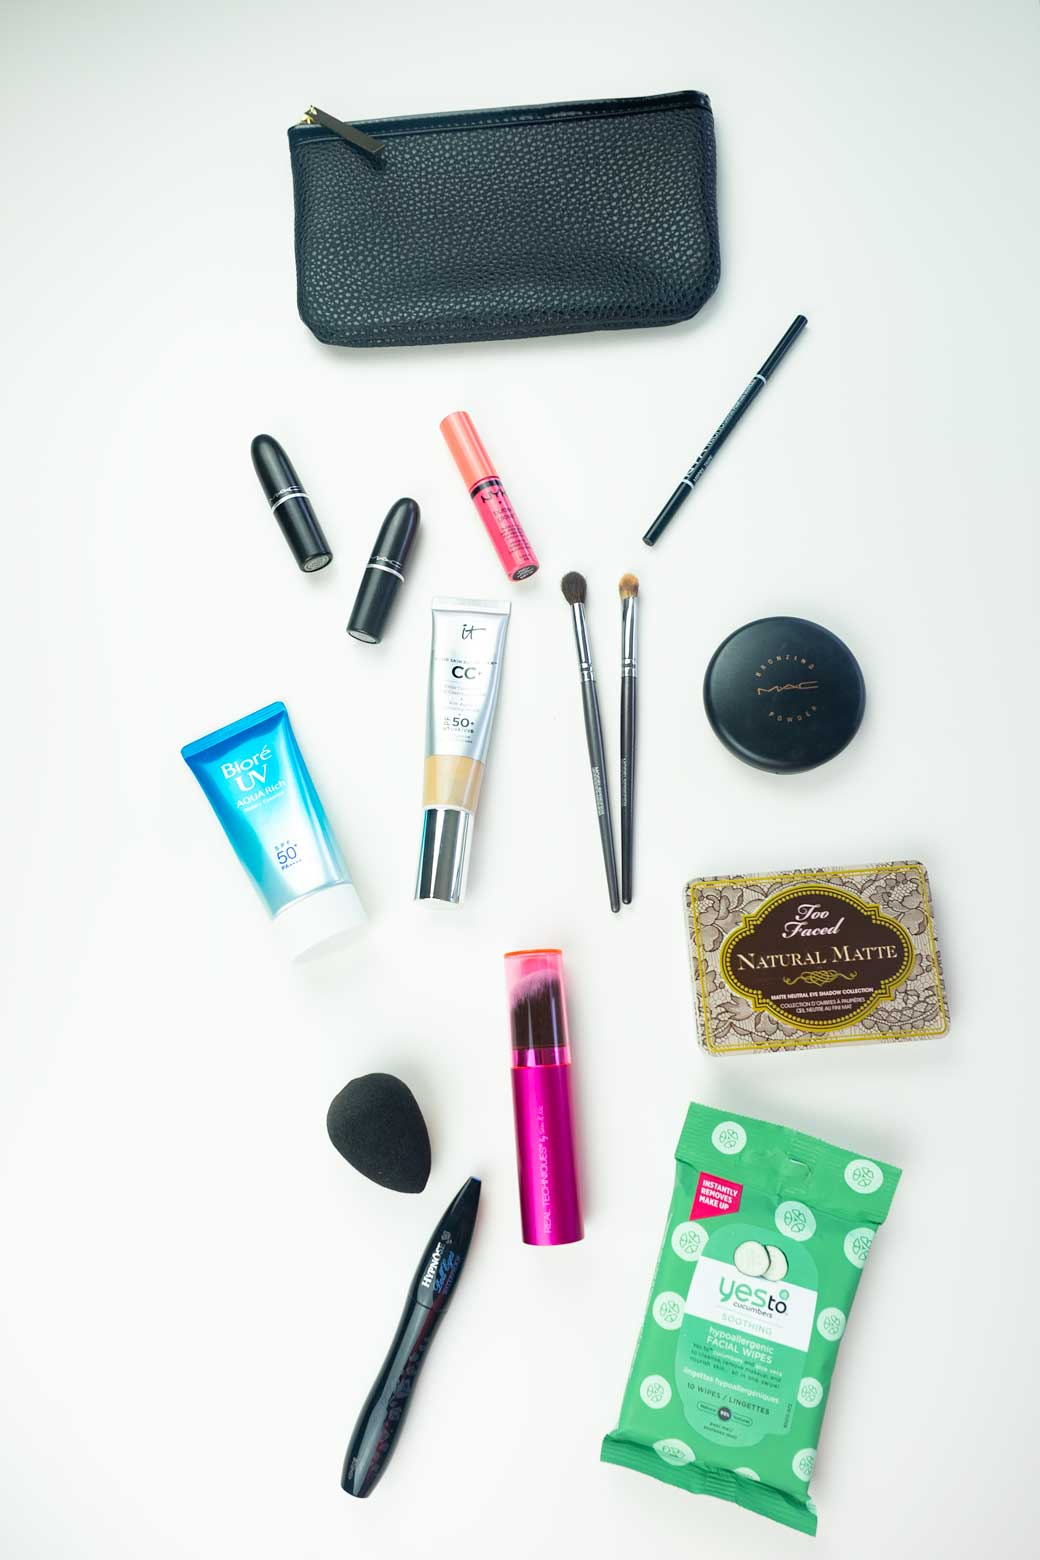 Contents of my capsule makeup bag for travel